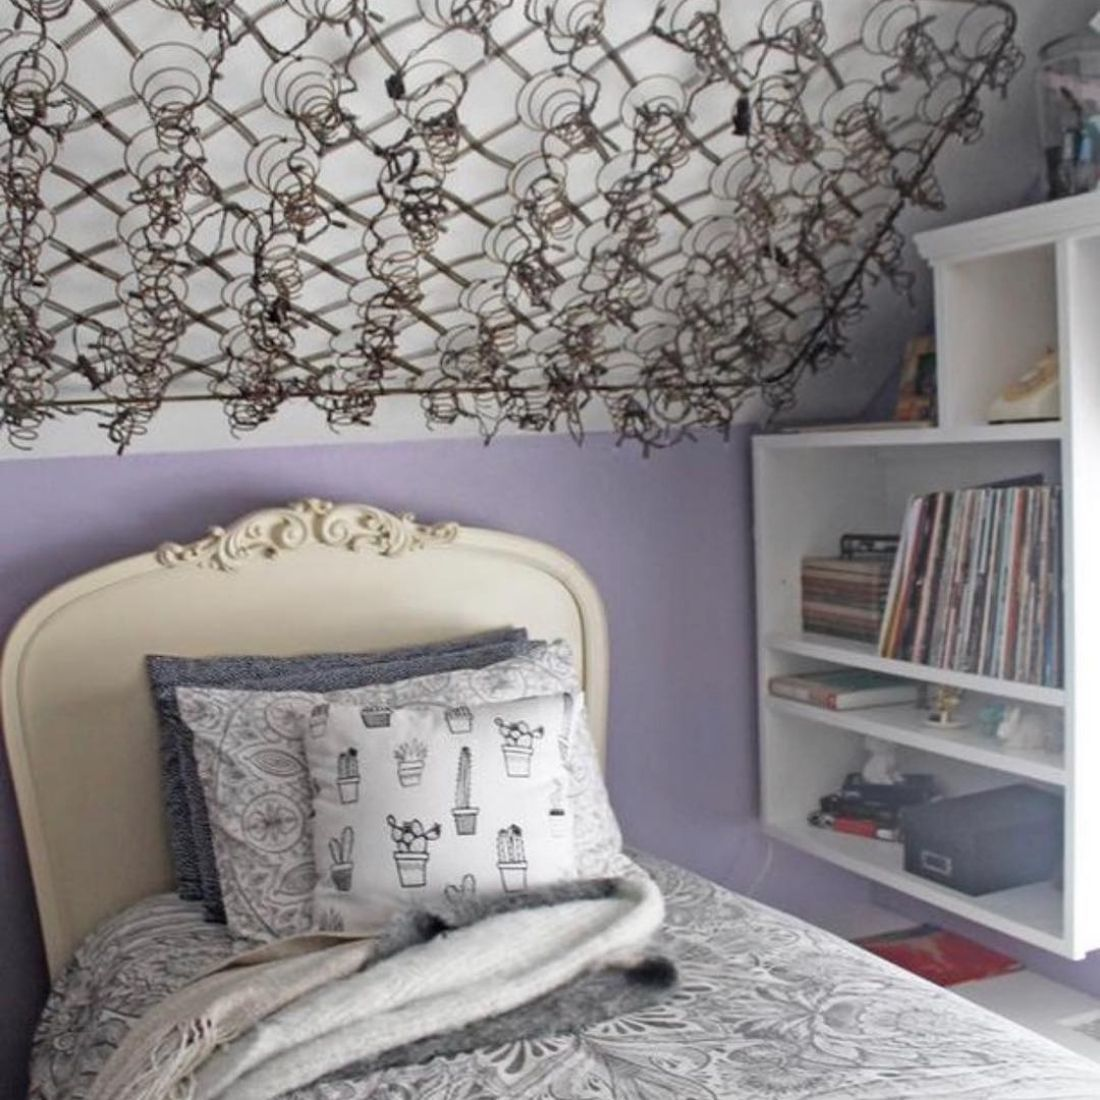 bedsprings on ceiling as decorative piece